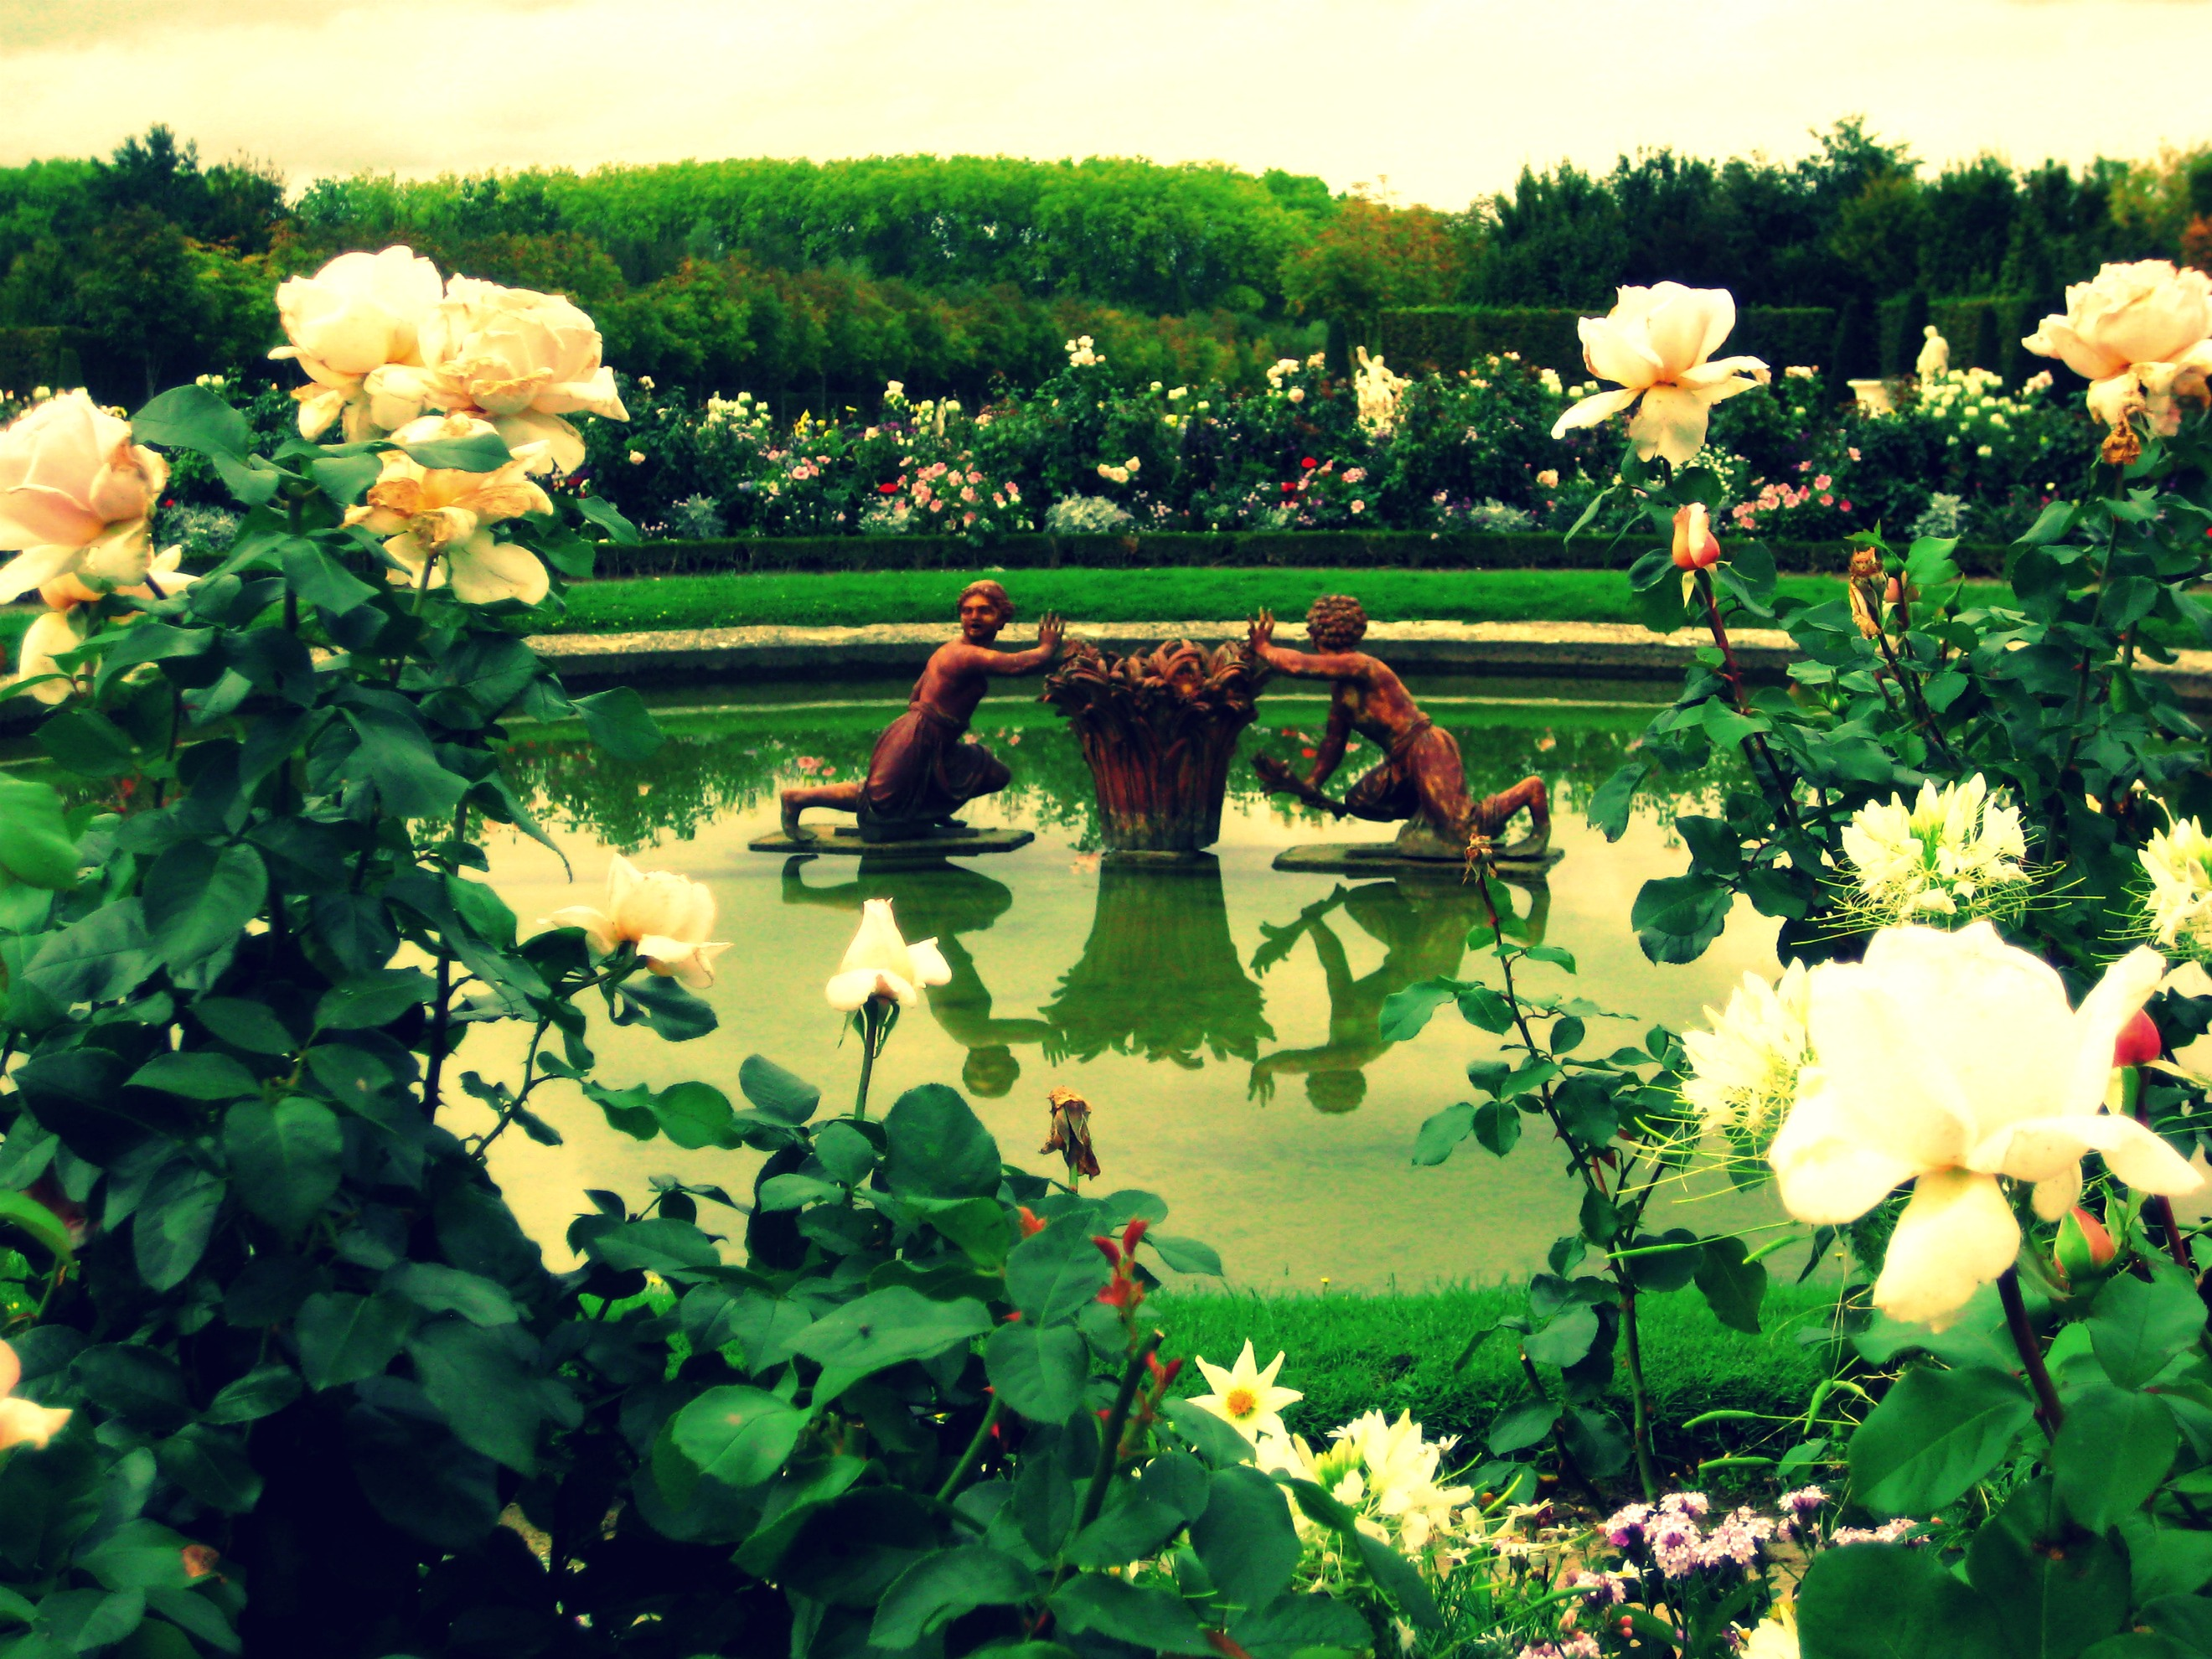 Most Beautiful Rose Gardens In The World image gallery of most beautiful rose gardens in the world